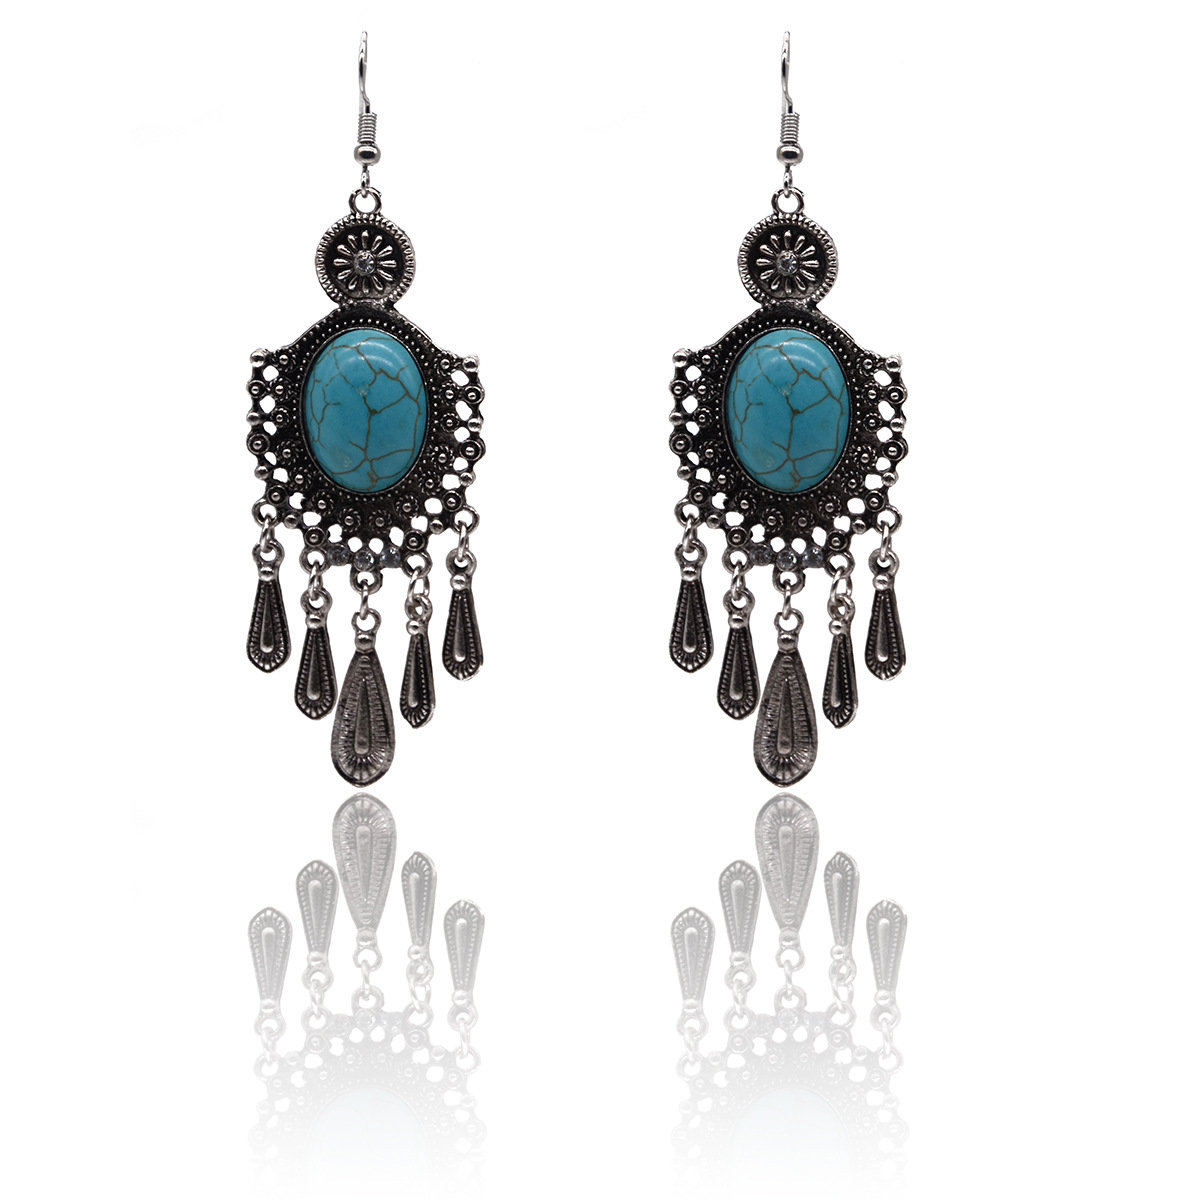 Bohemian Alloy Turquoise Water Drop Tassel Rhinestone Earrings